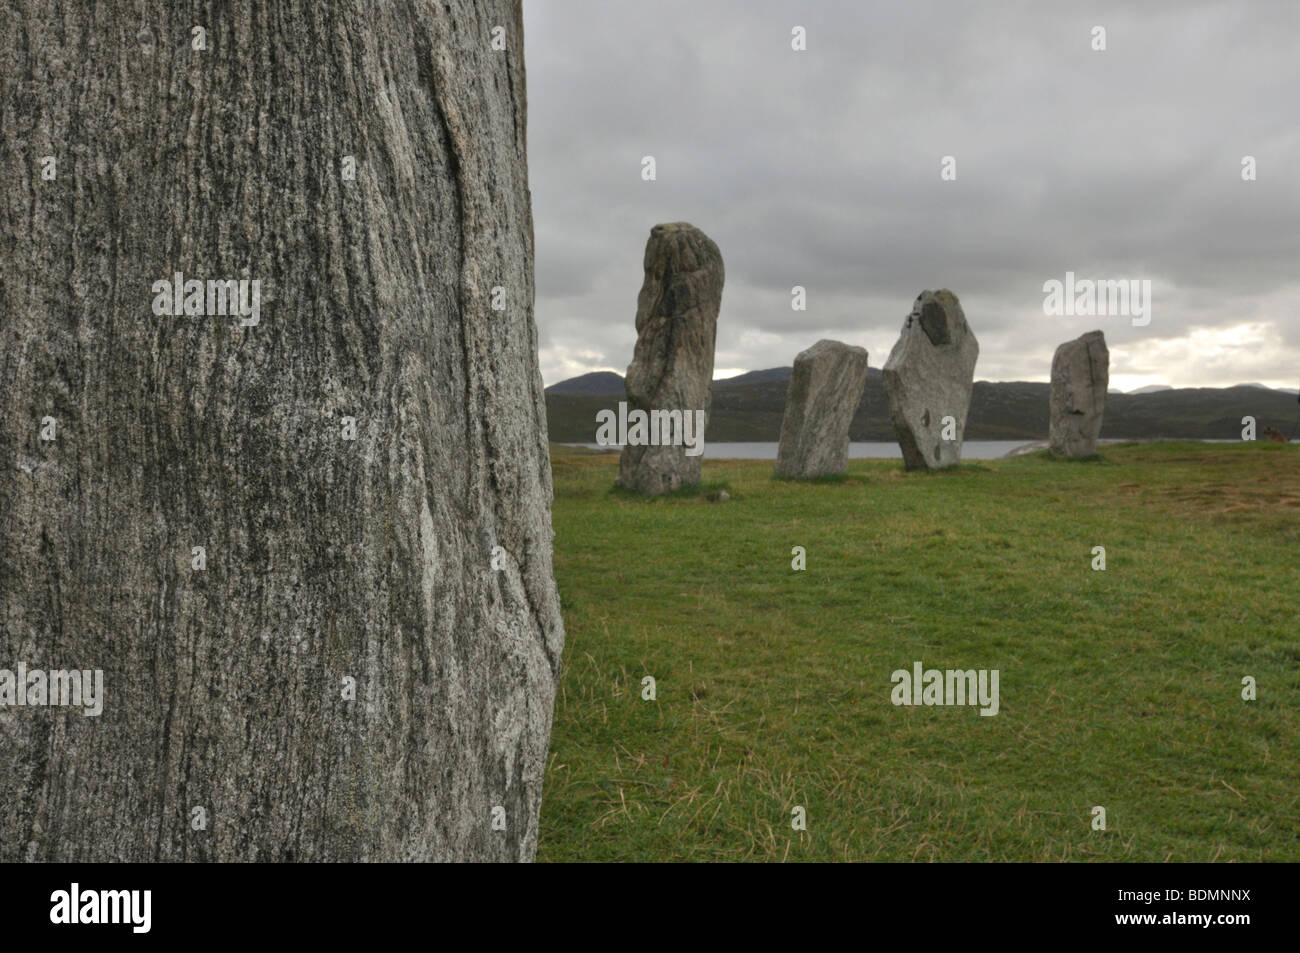 Lewisian gneiss in standing stones, Calanais, Isle of Lewis, Scotland - Stock Image